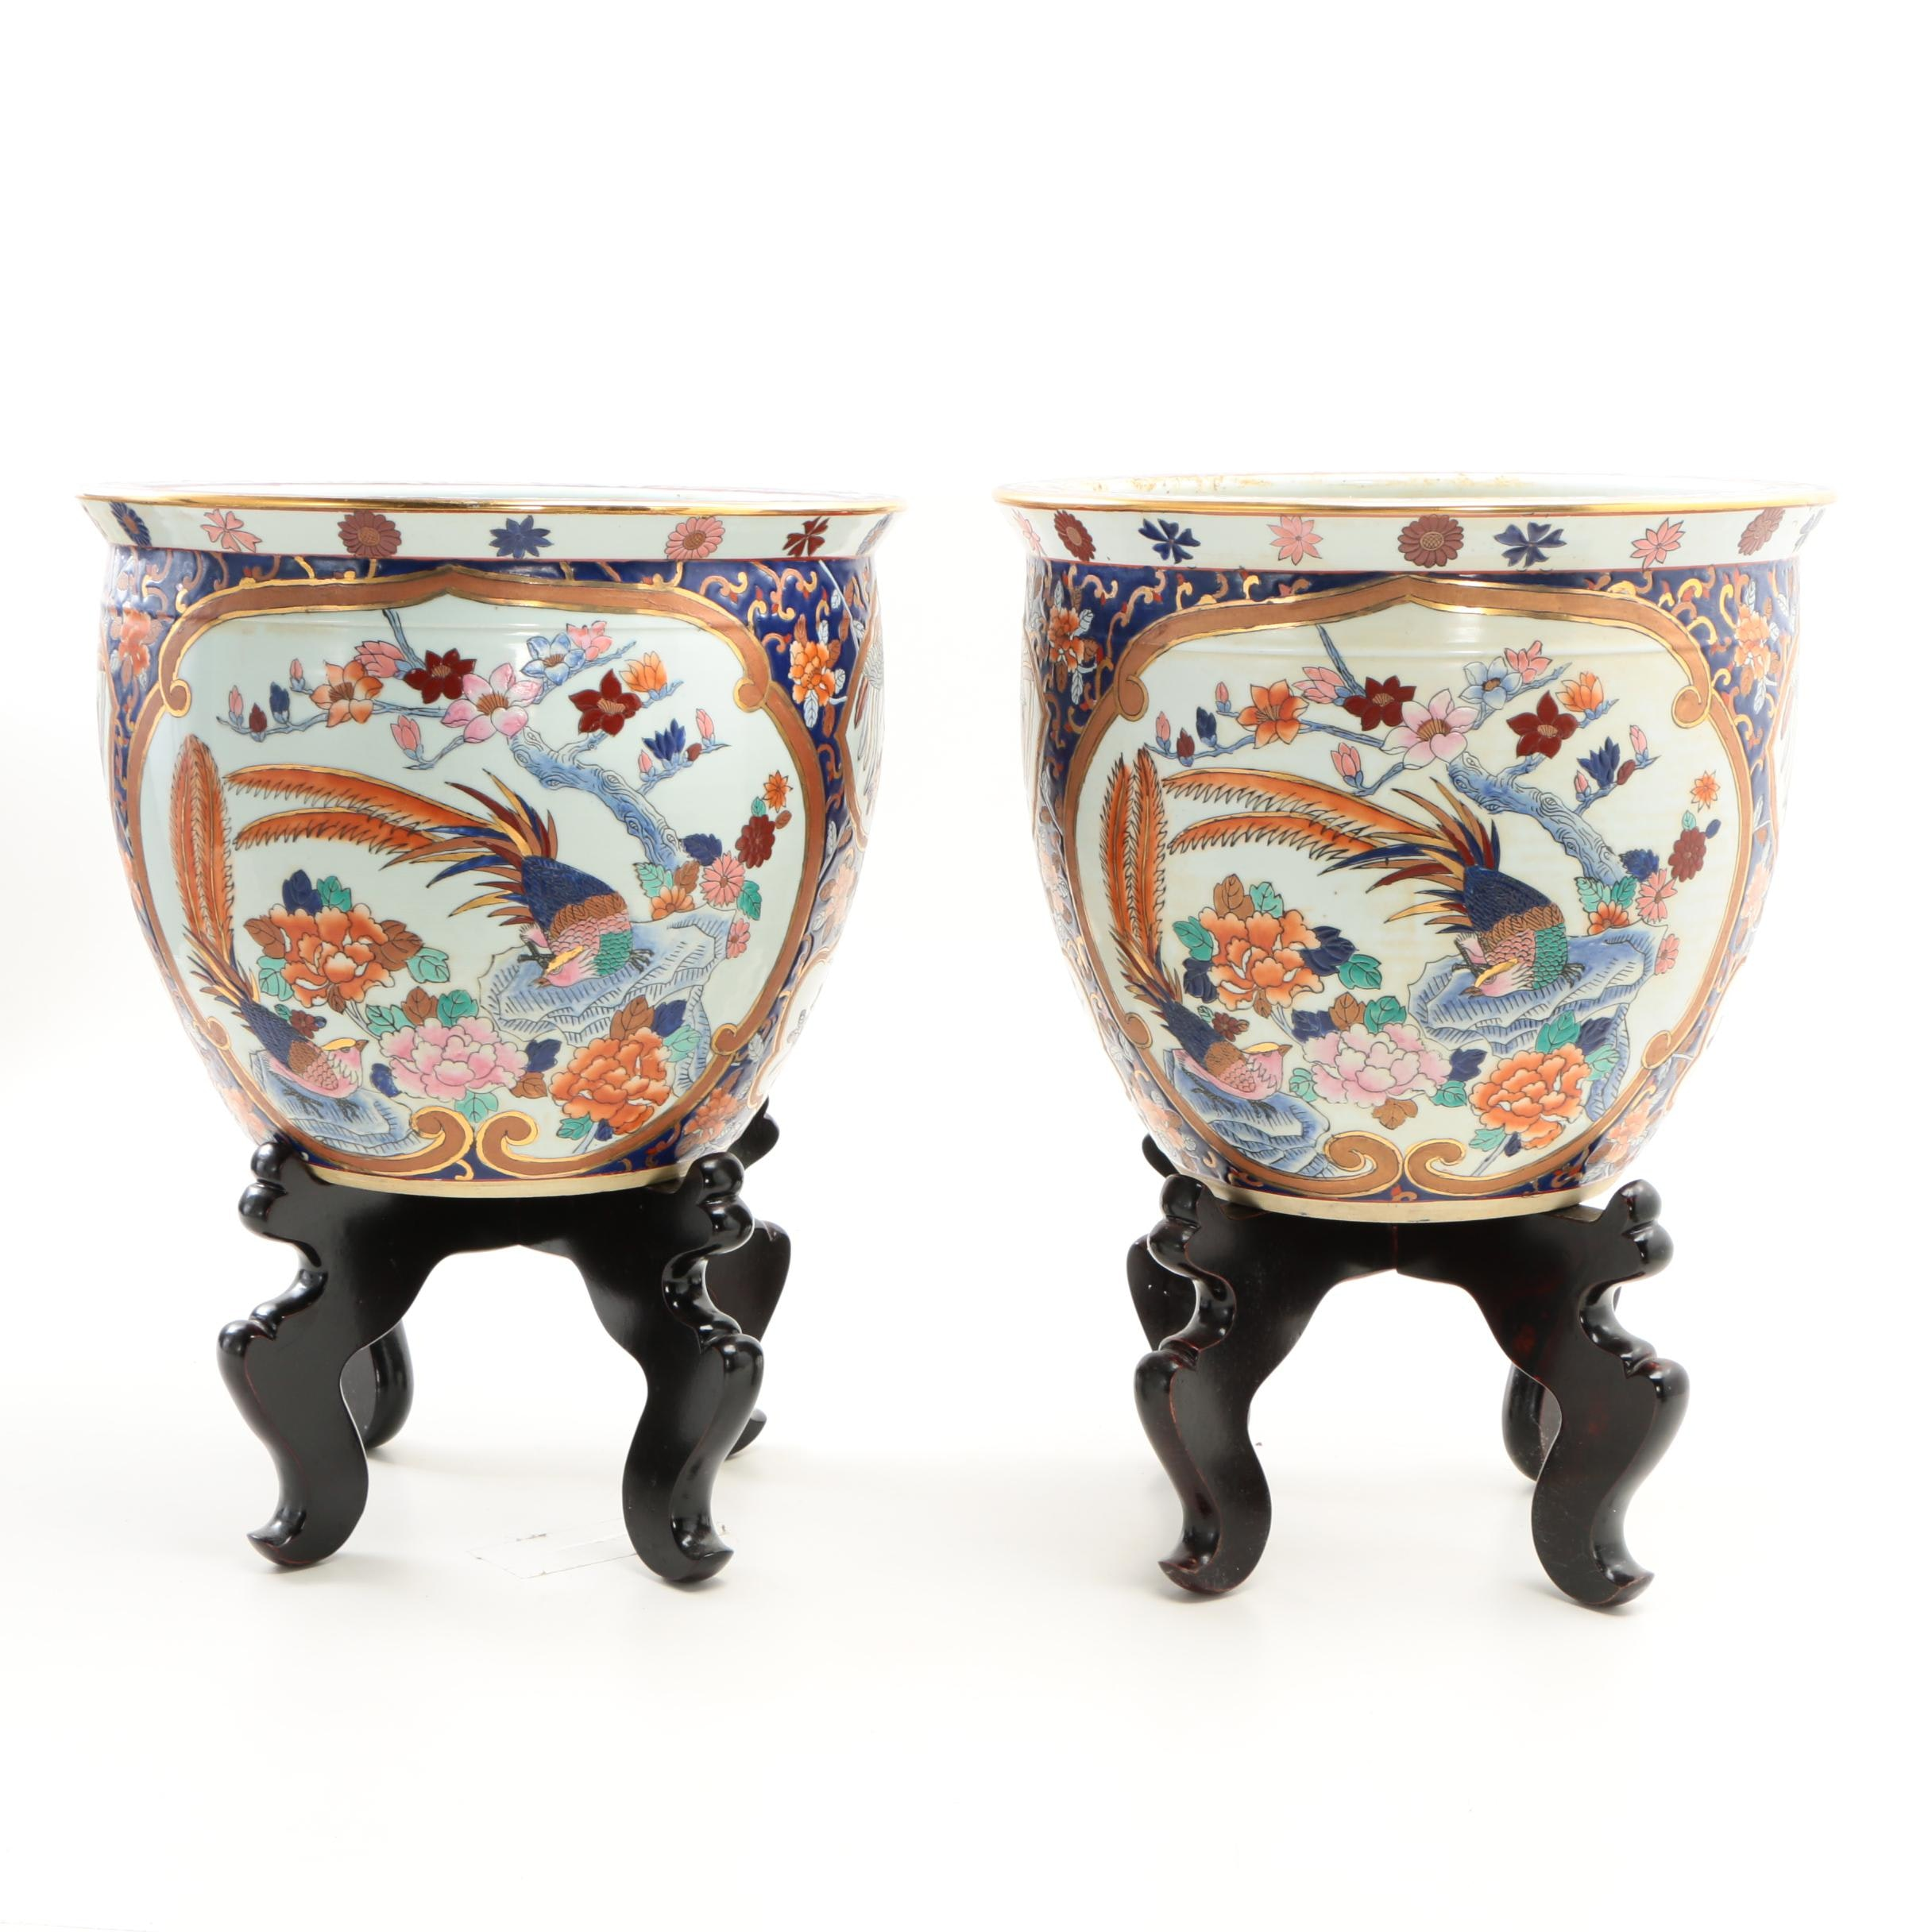 Chinese Ceramic Fishbowl Jardinieres with Carved Wooden Stands